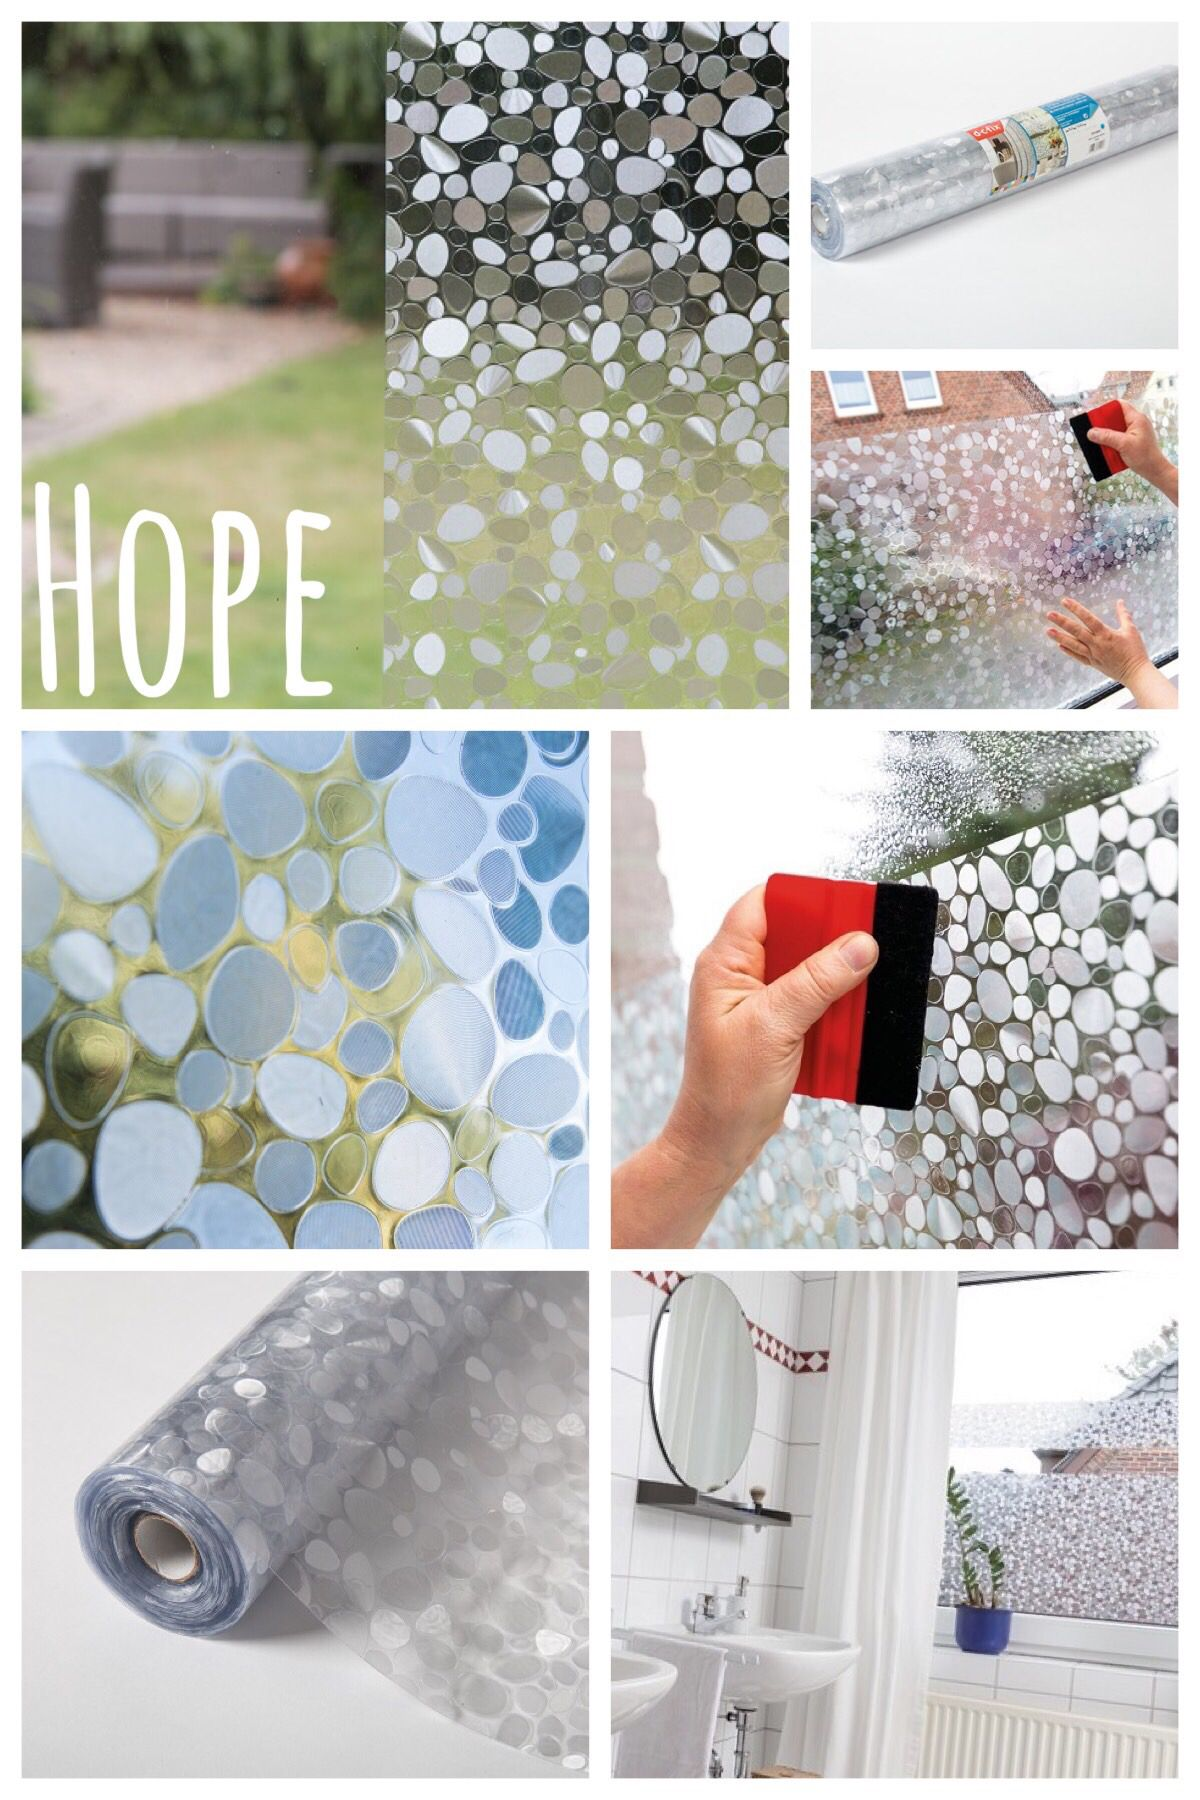 dcfix® static cling window film is a popular choice for